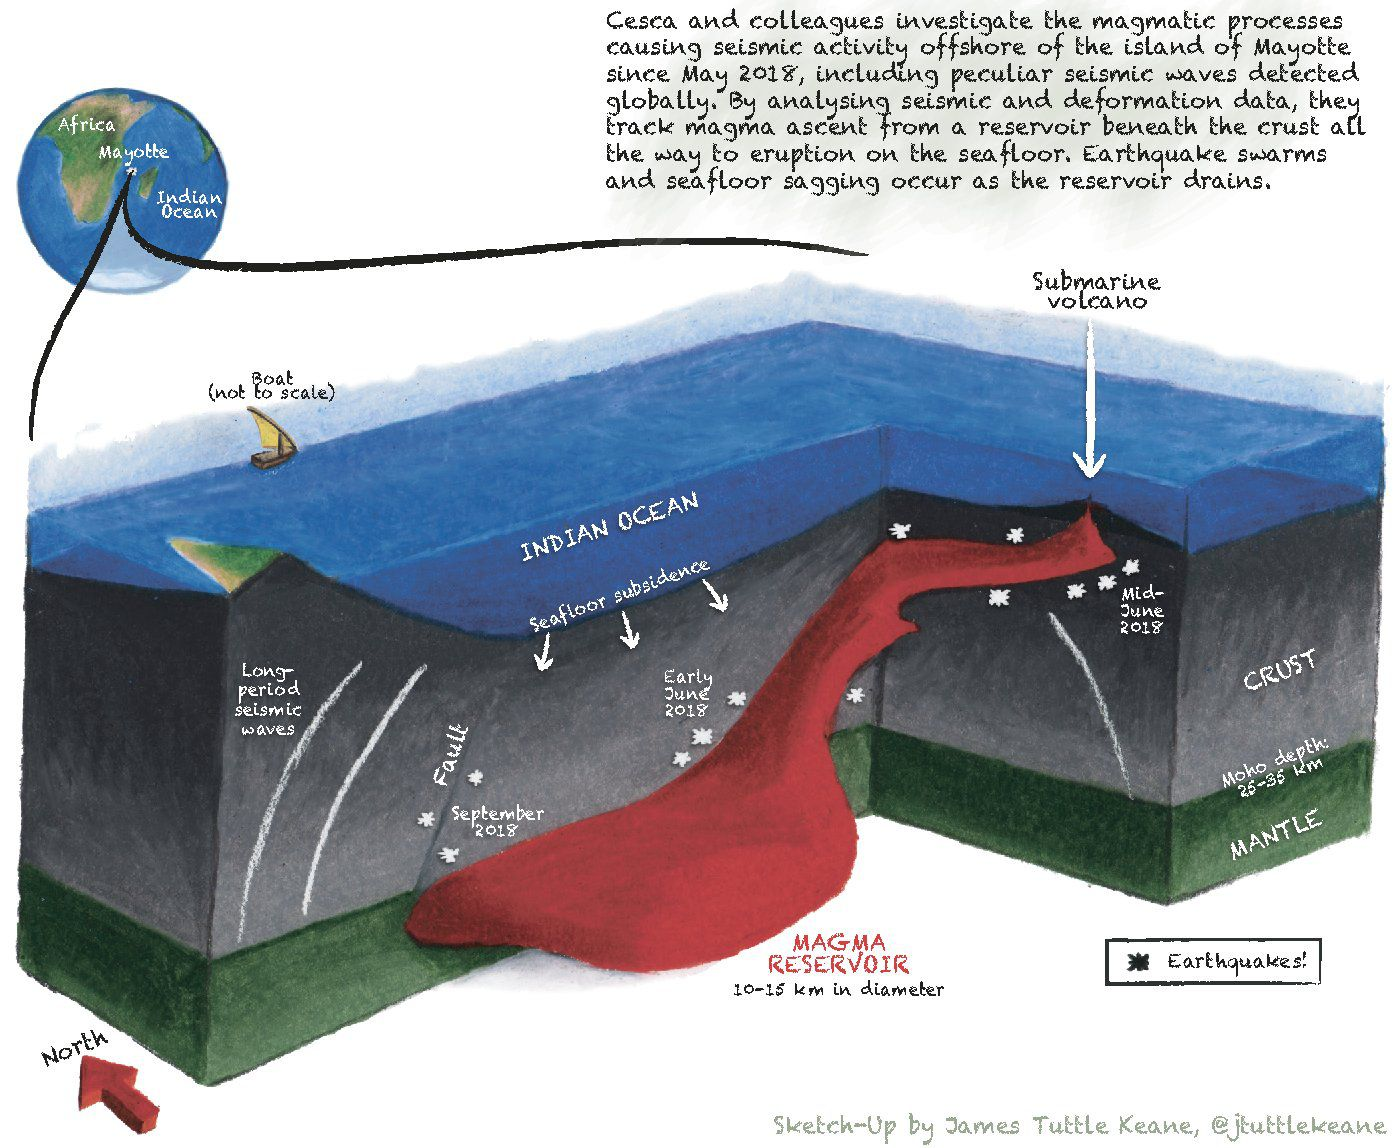 Sketch of the deep magma reservoir and the ascending path of magma to form a new underwater volcano. Different types of seismic and surface deformation accompany the four identified phases of agitation. Doc. CESCA ET AL. 2019, NATURE GEOSCIENCE